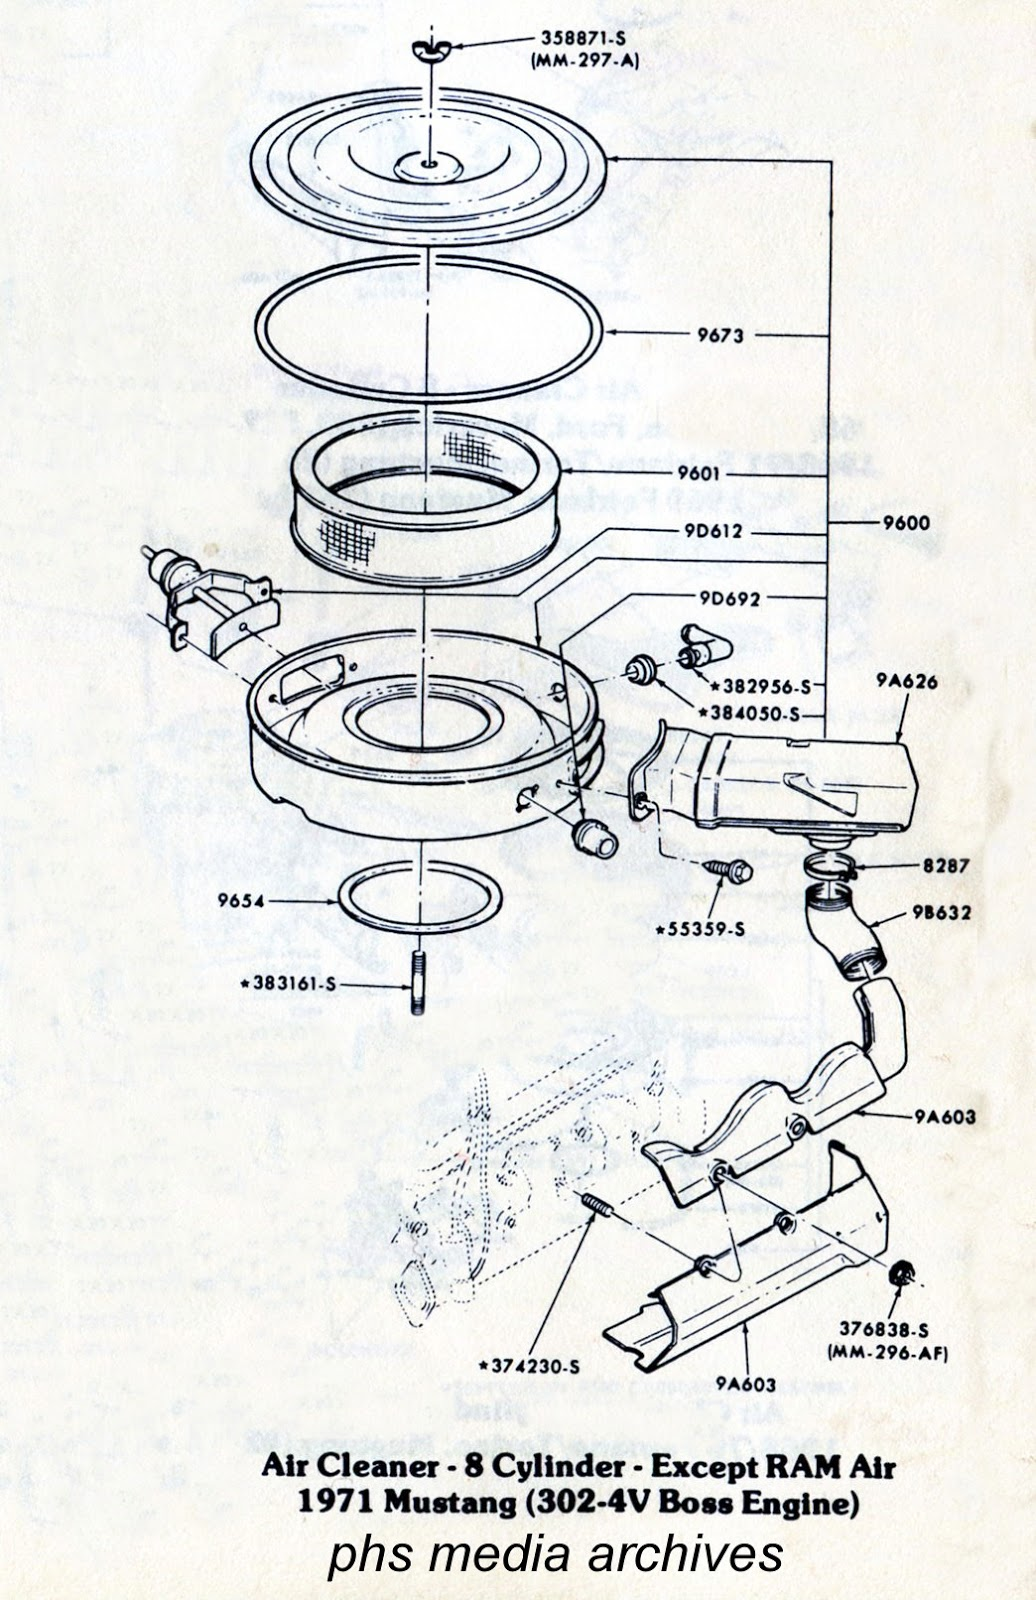 tech series ford mustang air cleaner id guide 1971 1973 rh  phscollectorcarworld blogspot com 1973 Mustang 302 Engine Ford 302 Crate  Engine